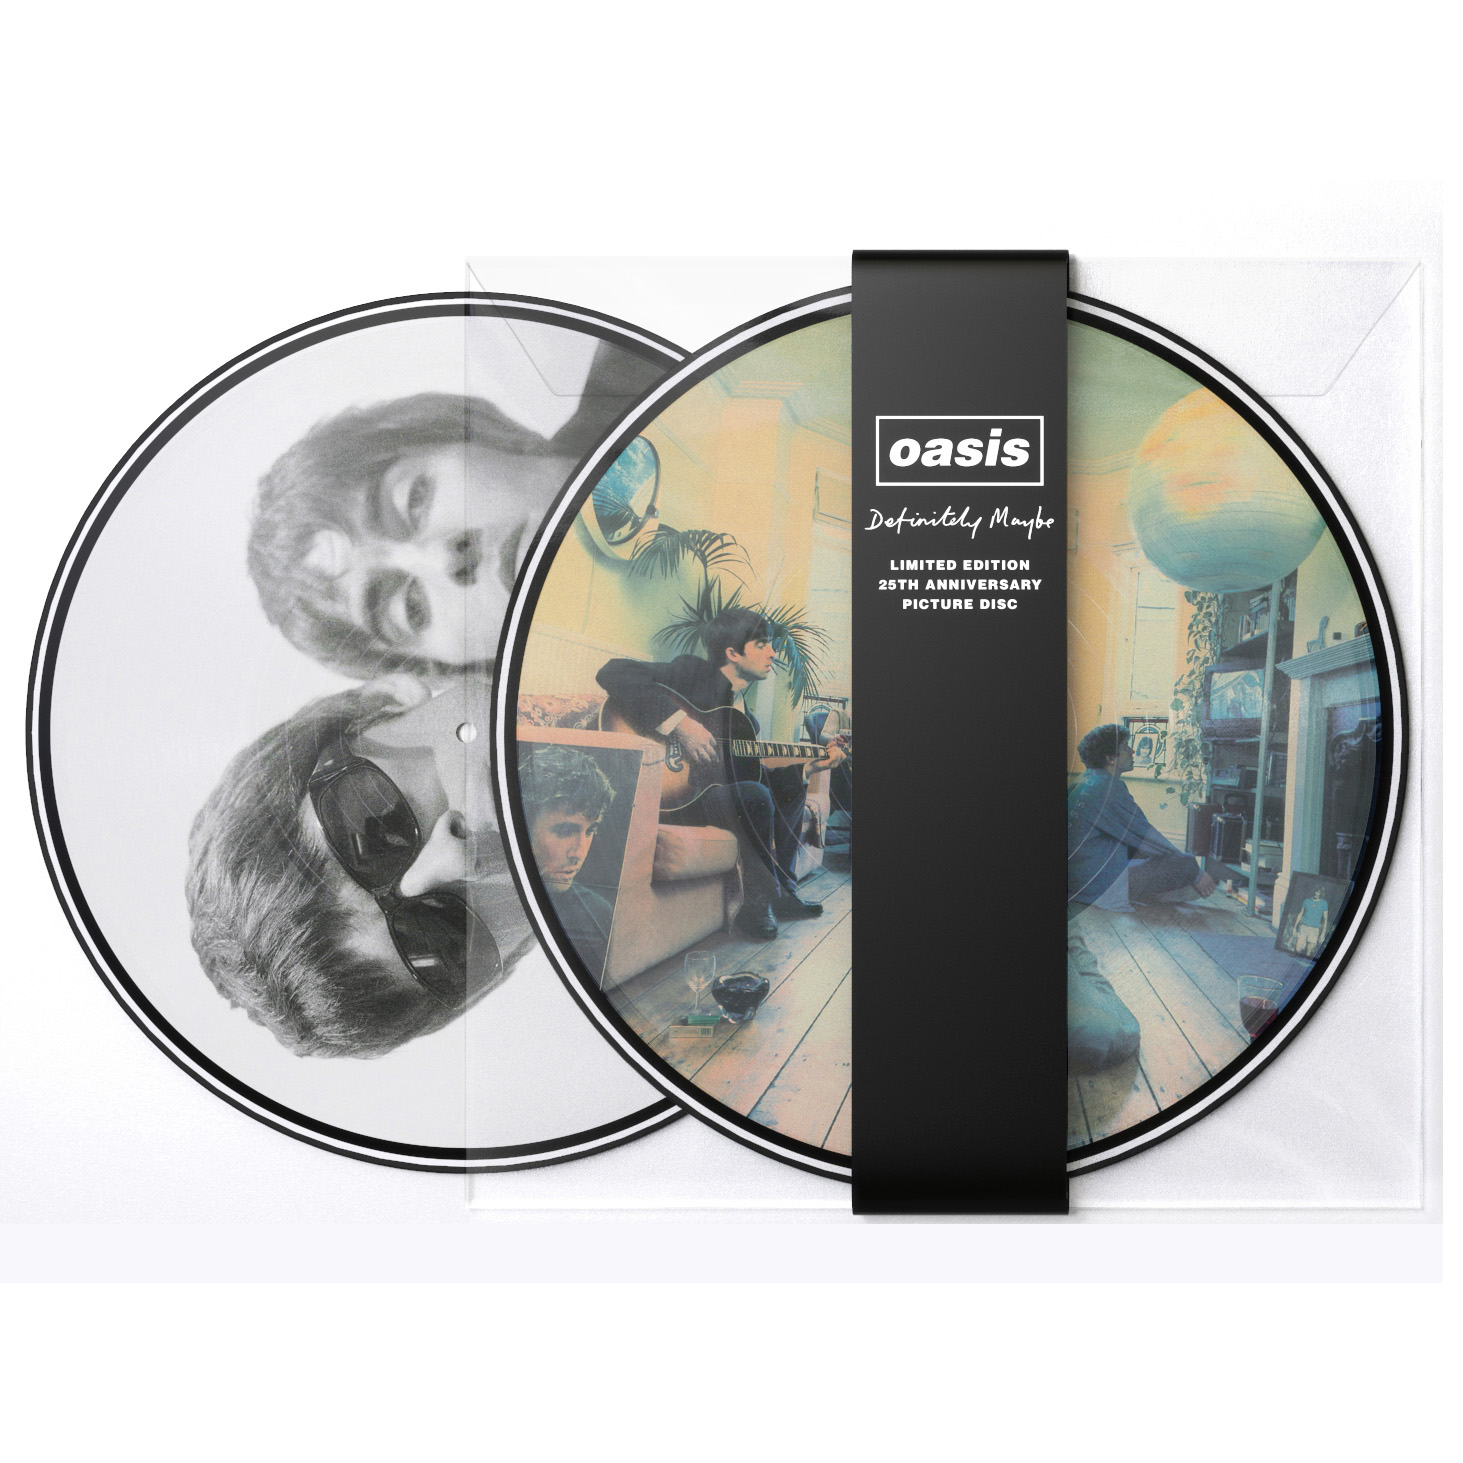 News – Oasis – Definitely Maybe – Une édition picture disc